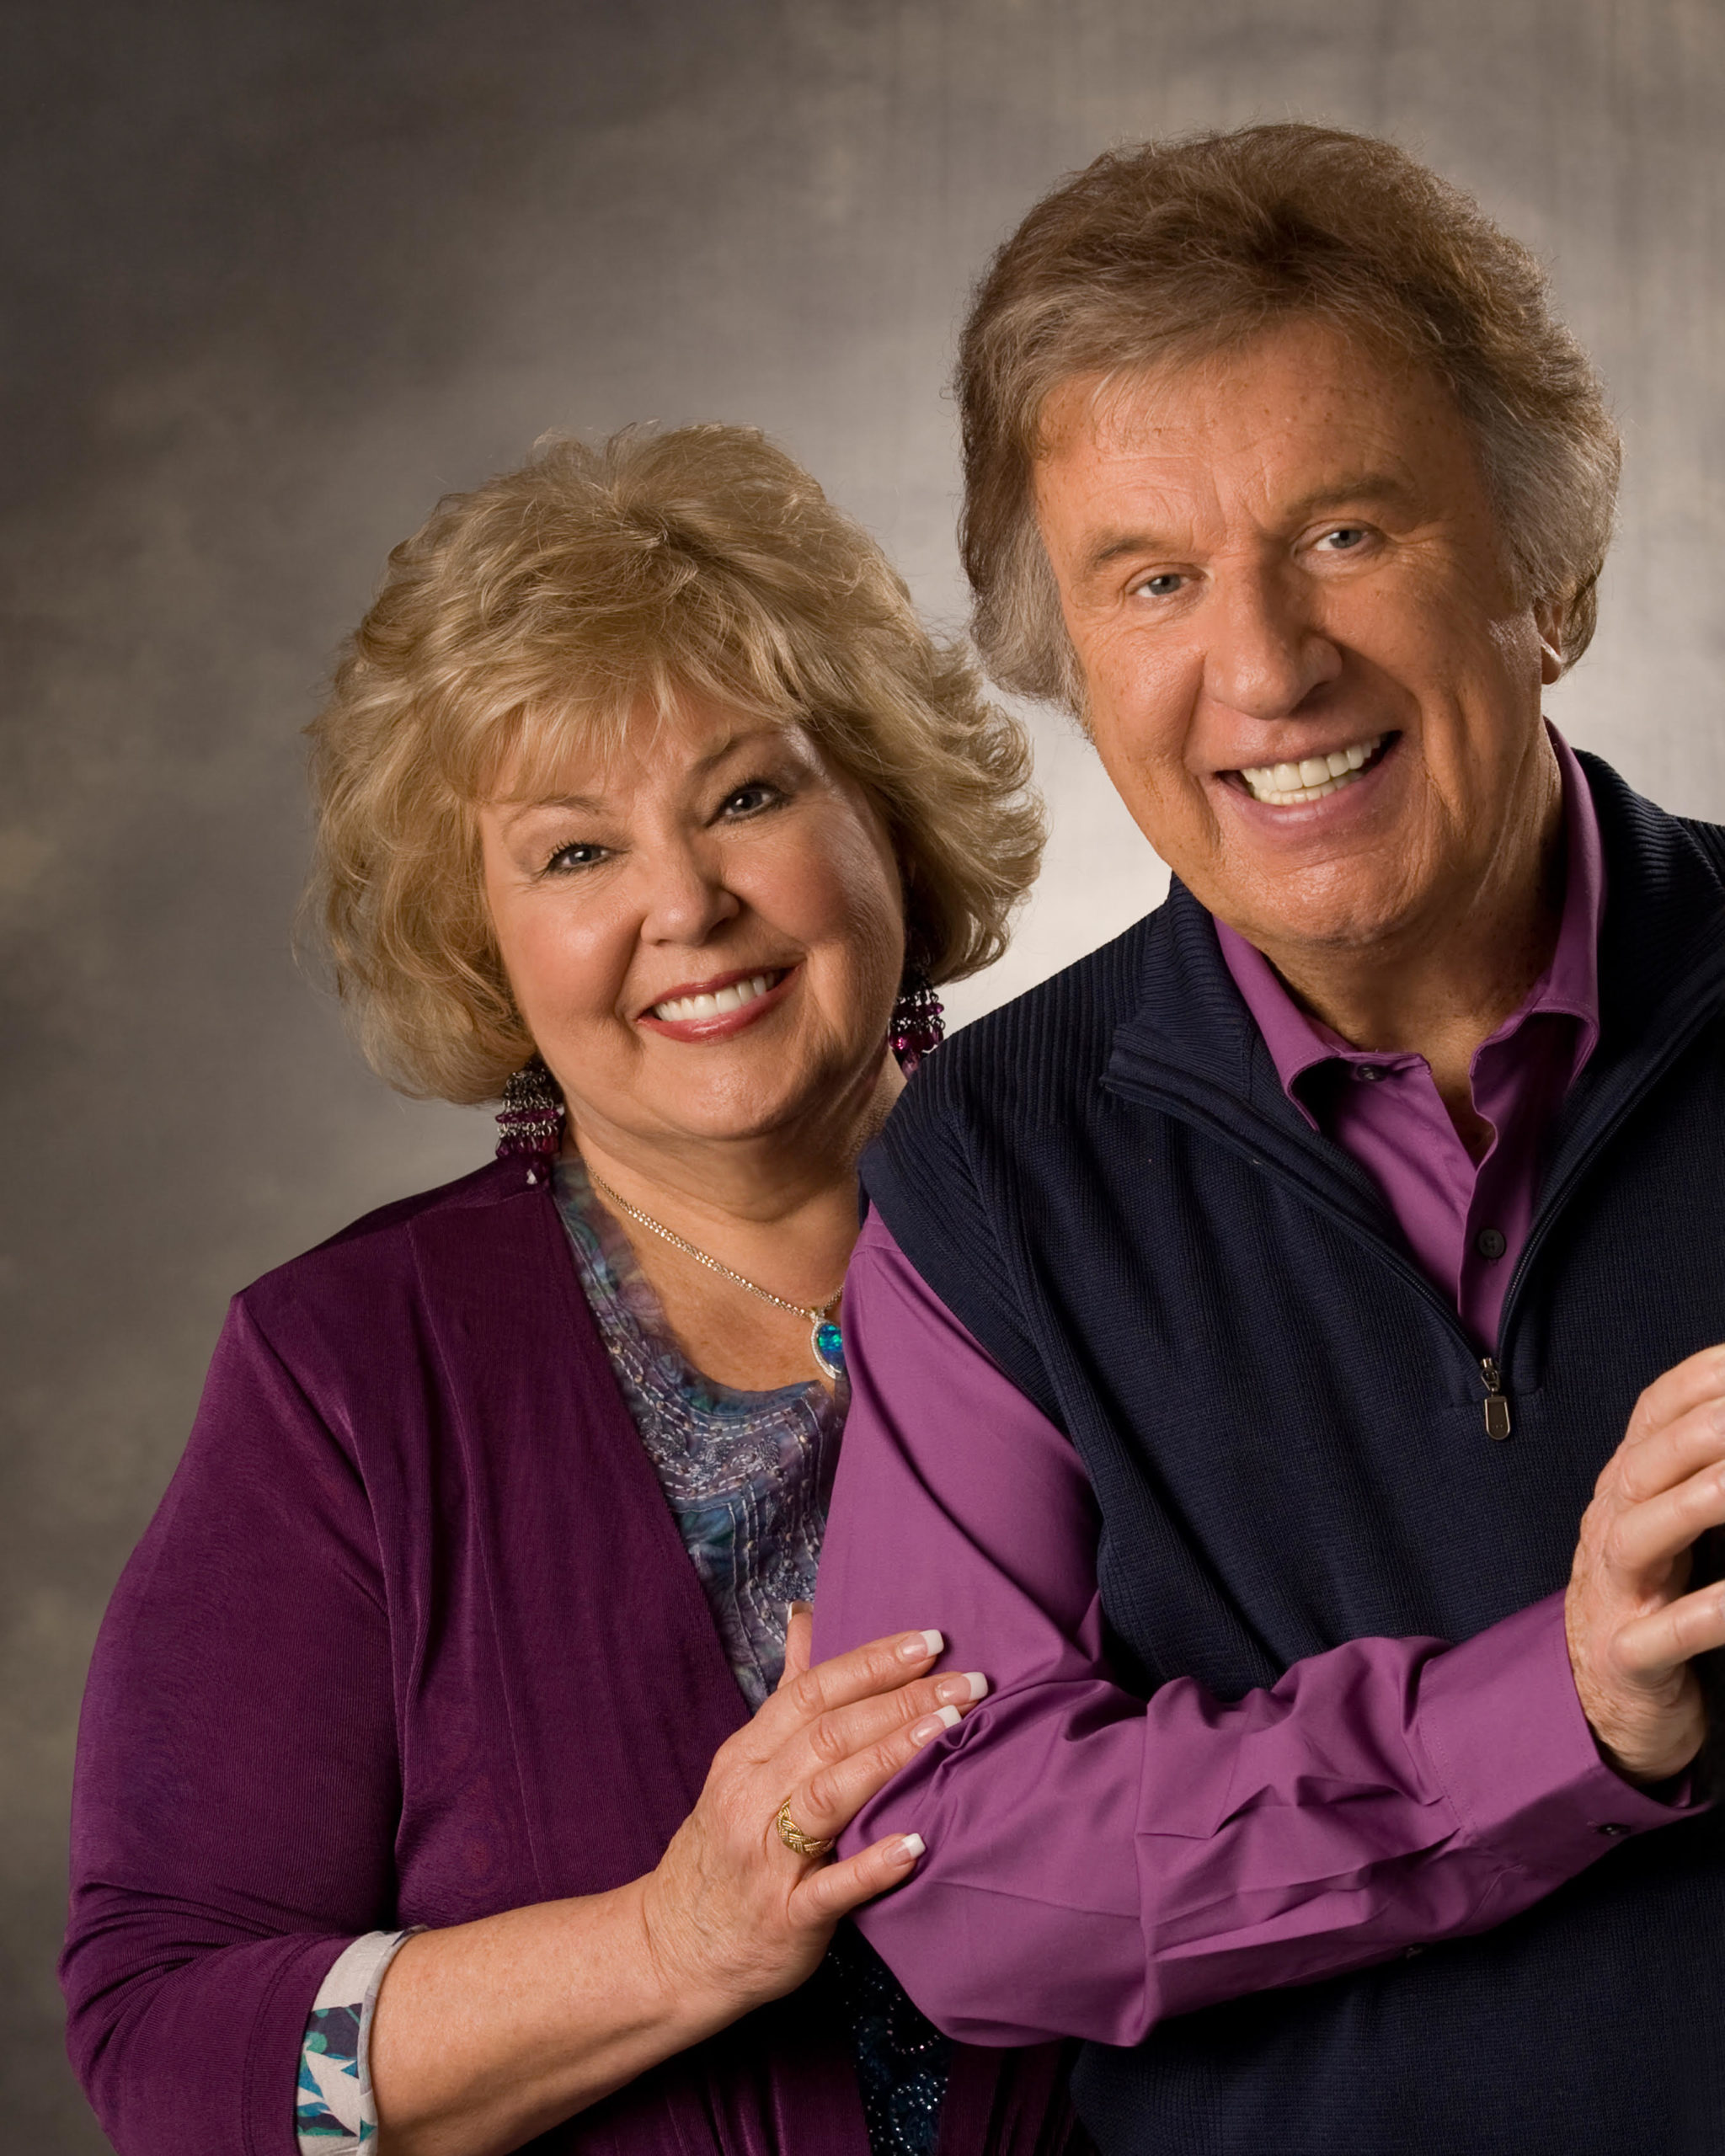 GAITHER MANAGEMENT ANNOUNCES POSTPONEMENT OF ANNUAL FAMILY FEST EVENT